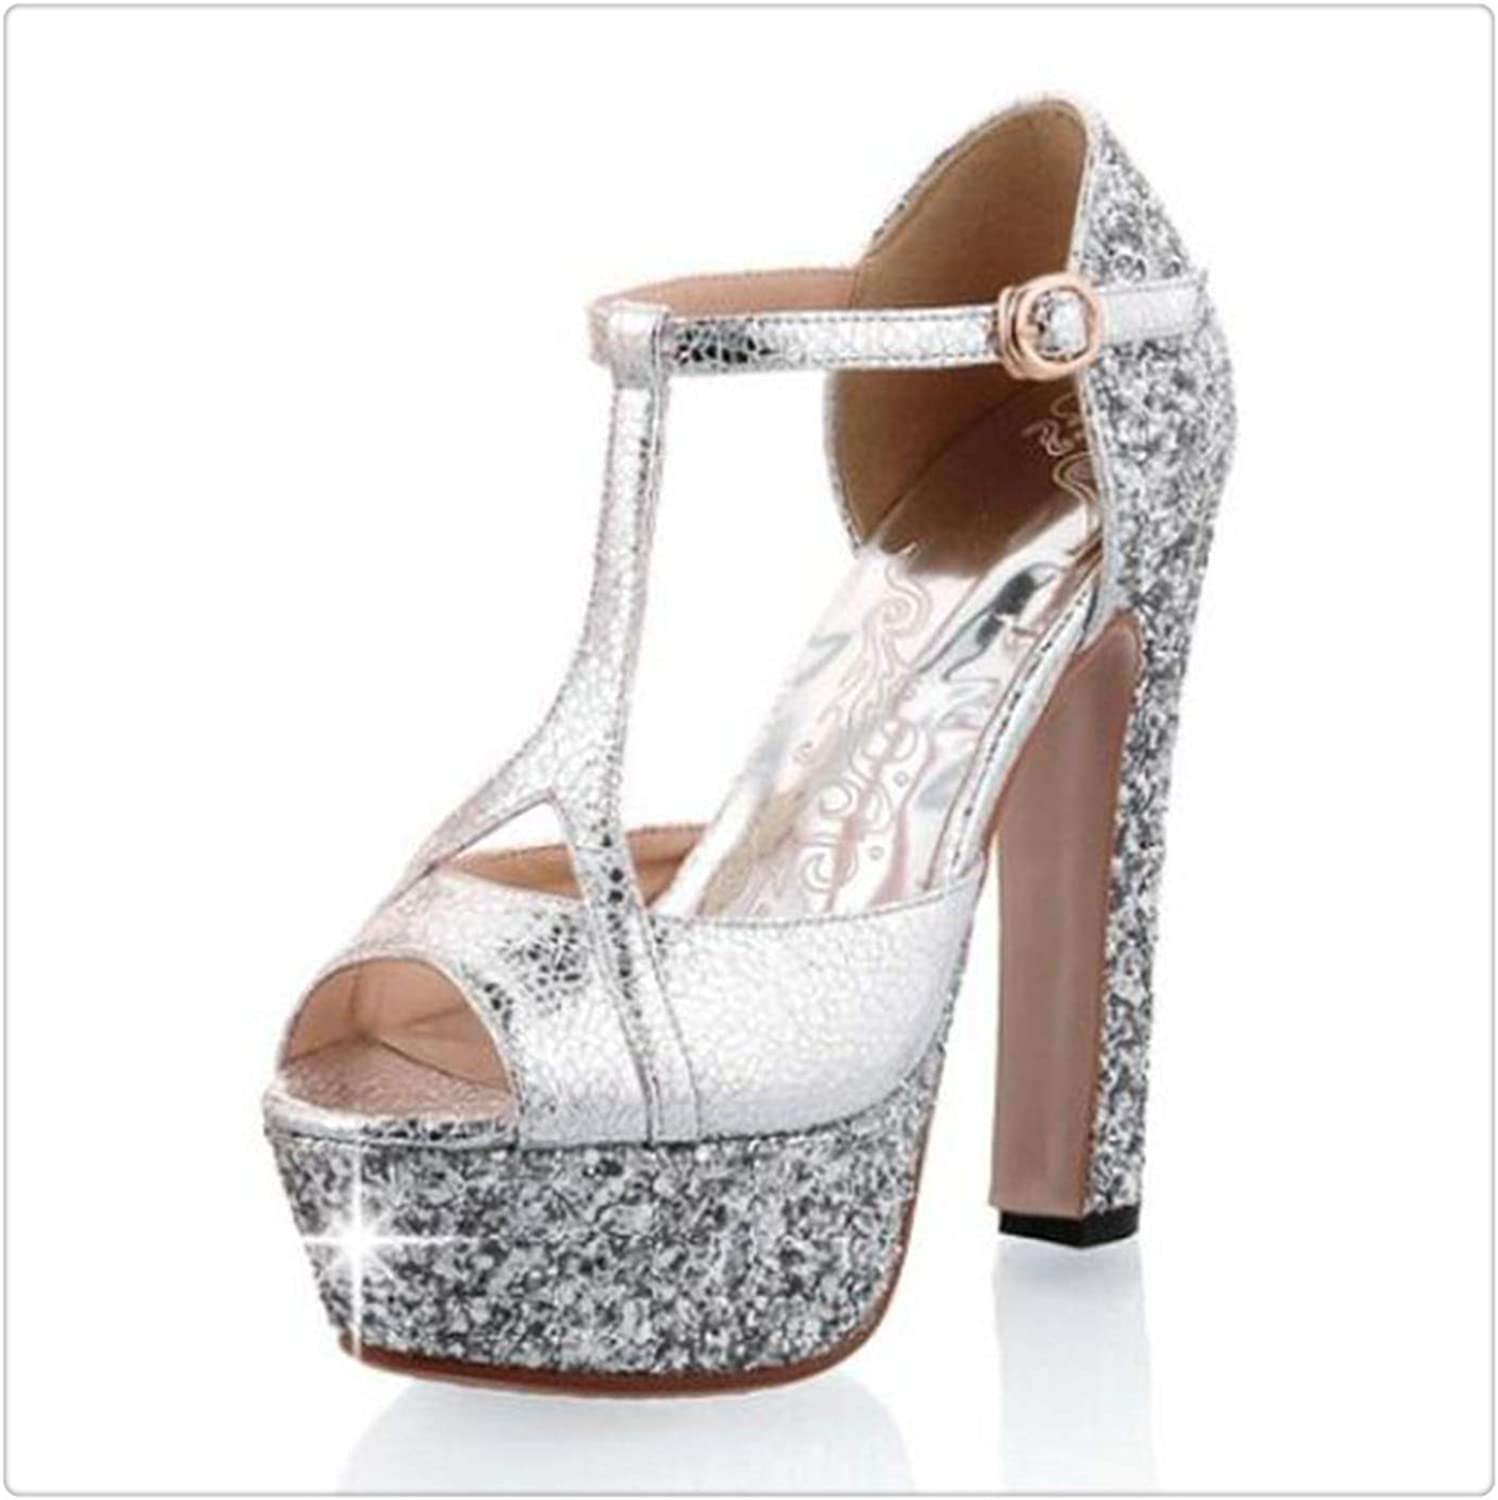 Yyixianma Office Lady High Heel Sandals Shine Glitter Platform Summer shoes Ankle Strap Spike Heel Sandals Women shoes Size 31-43 Silver 10